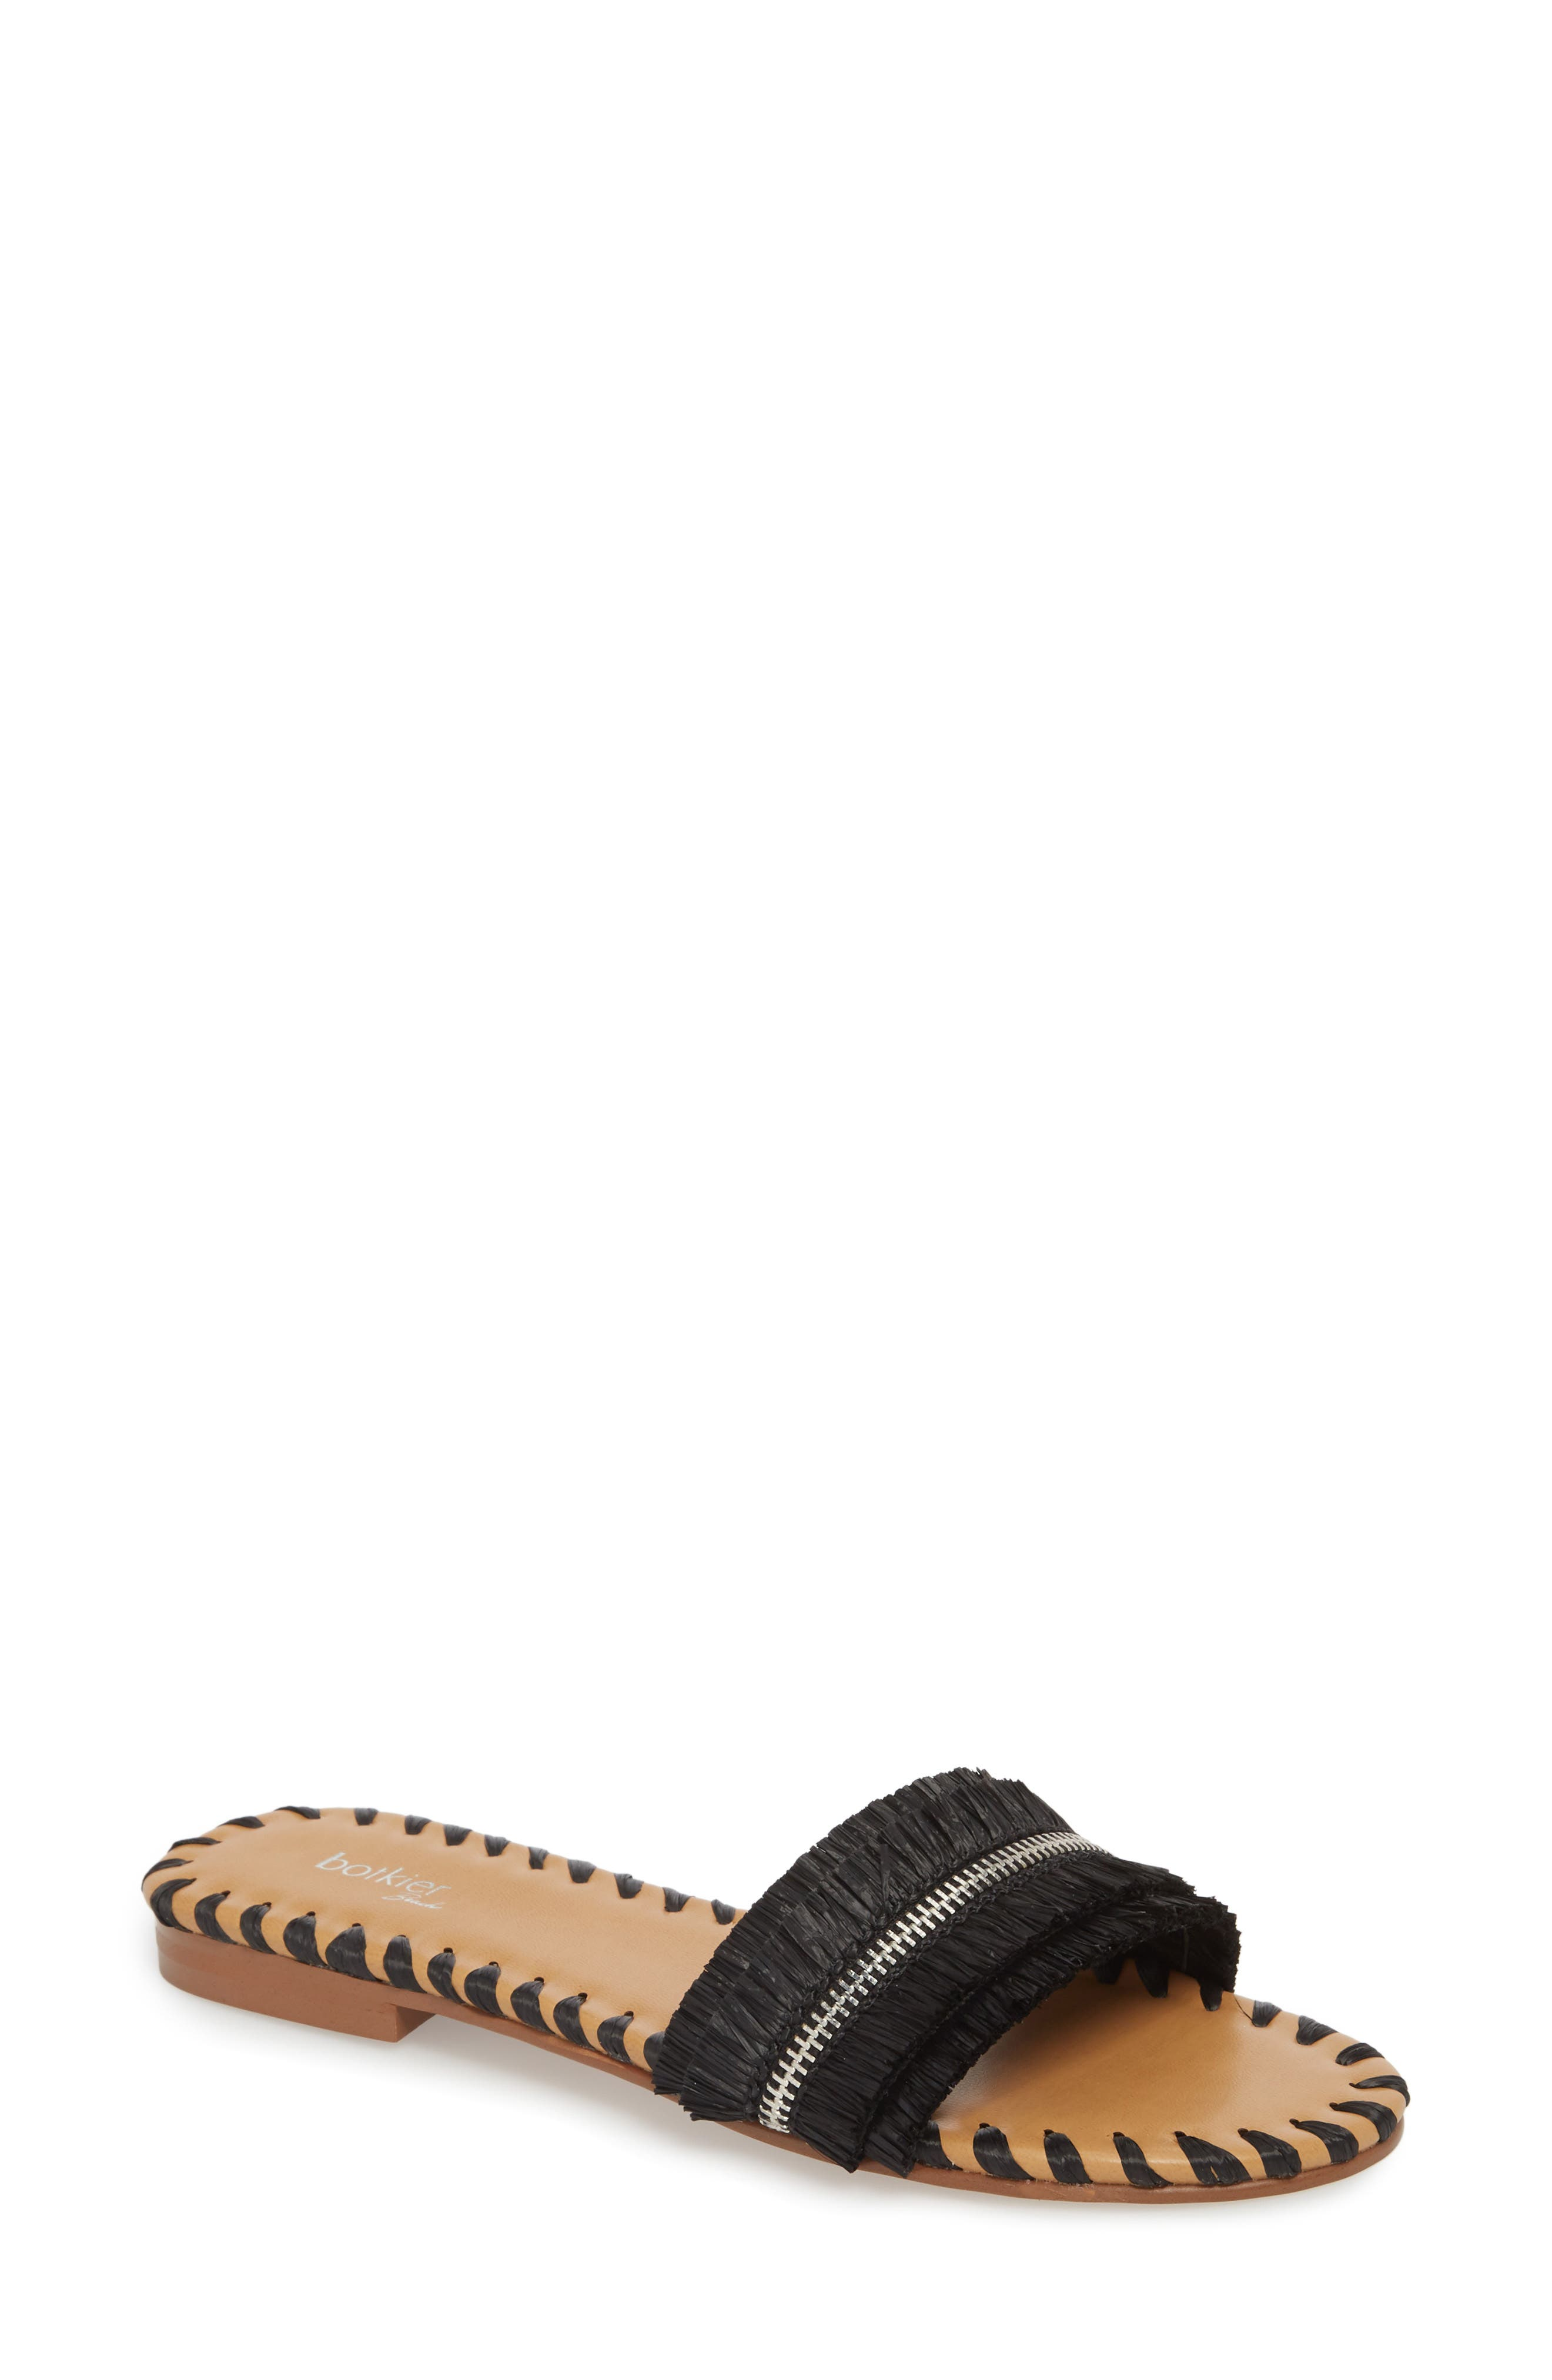 Bonnie Slide Sandal,                             Main thumbnail 1, color,